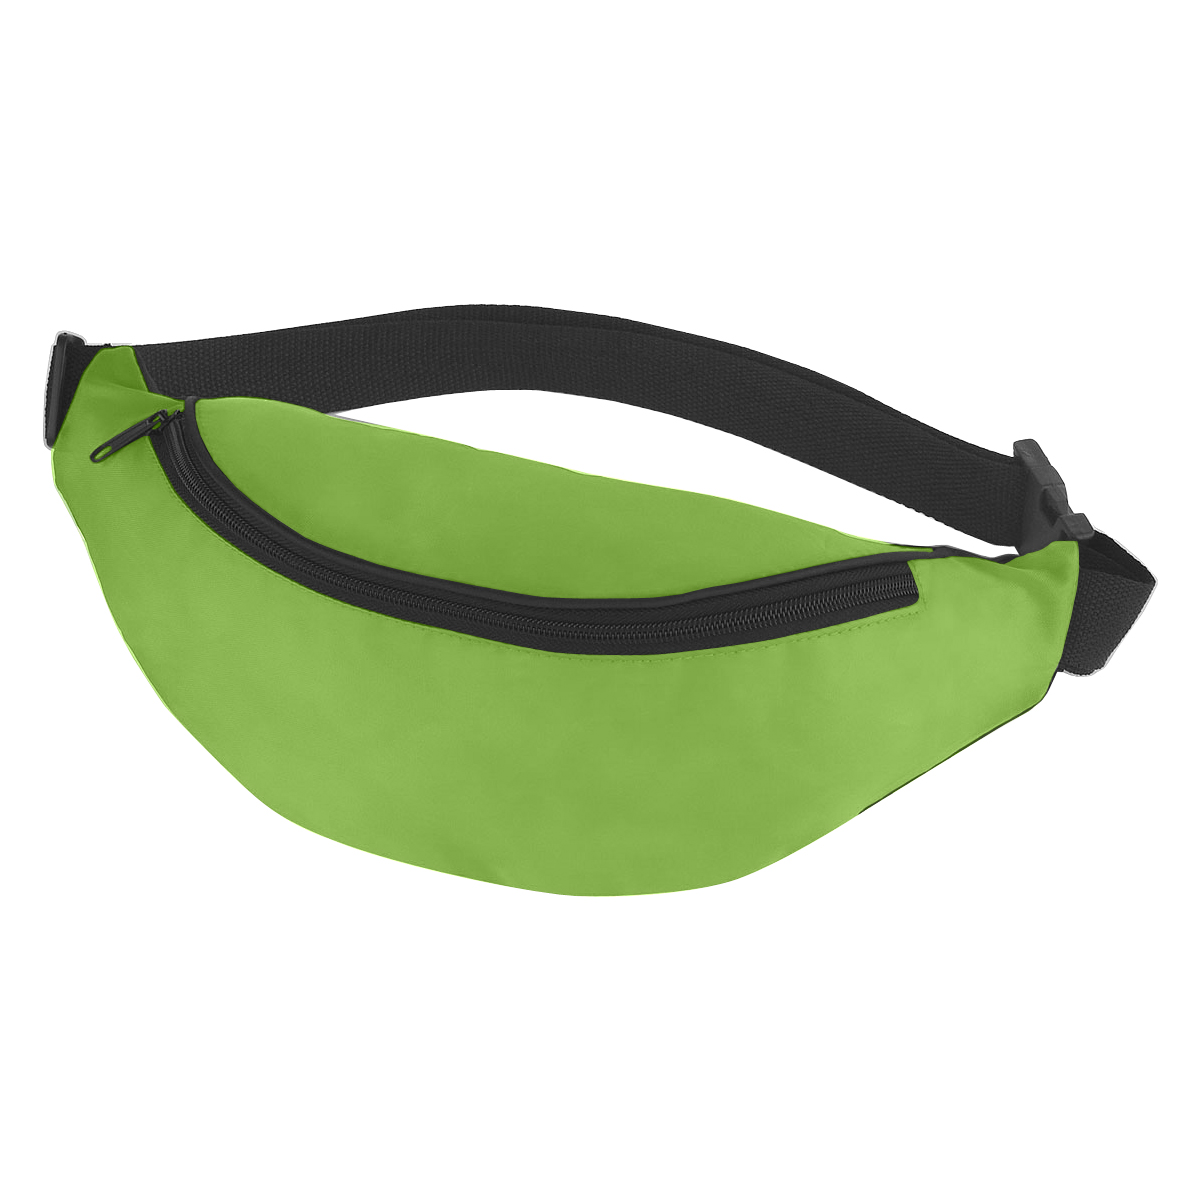 Printed Budget Fanny Pack